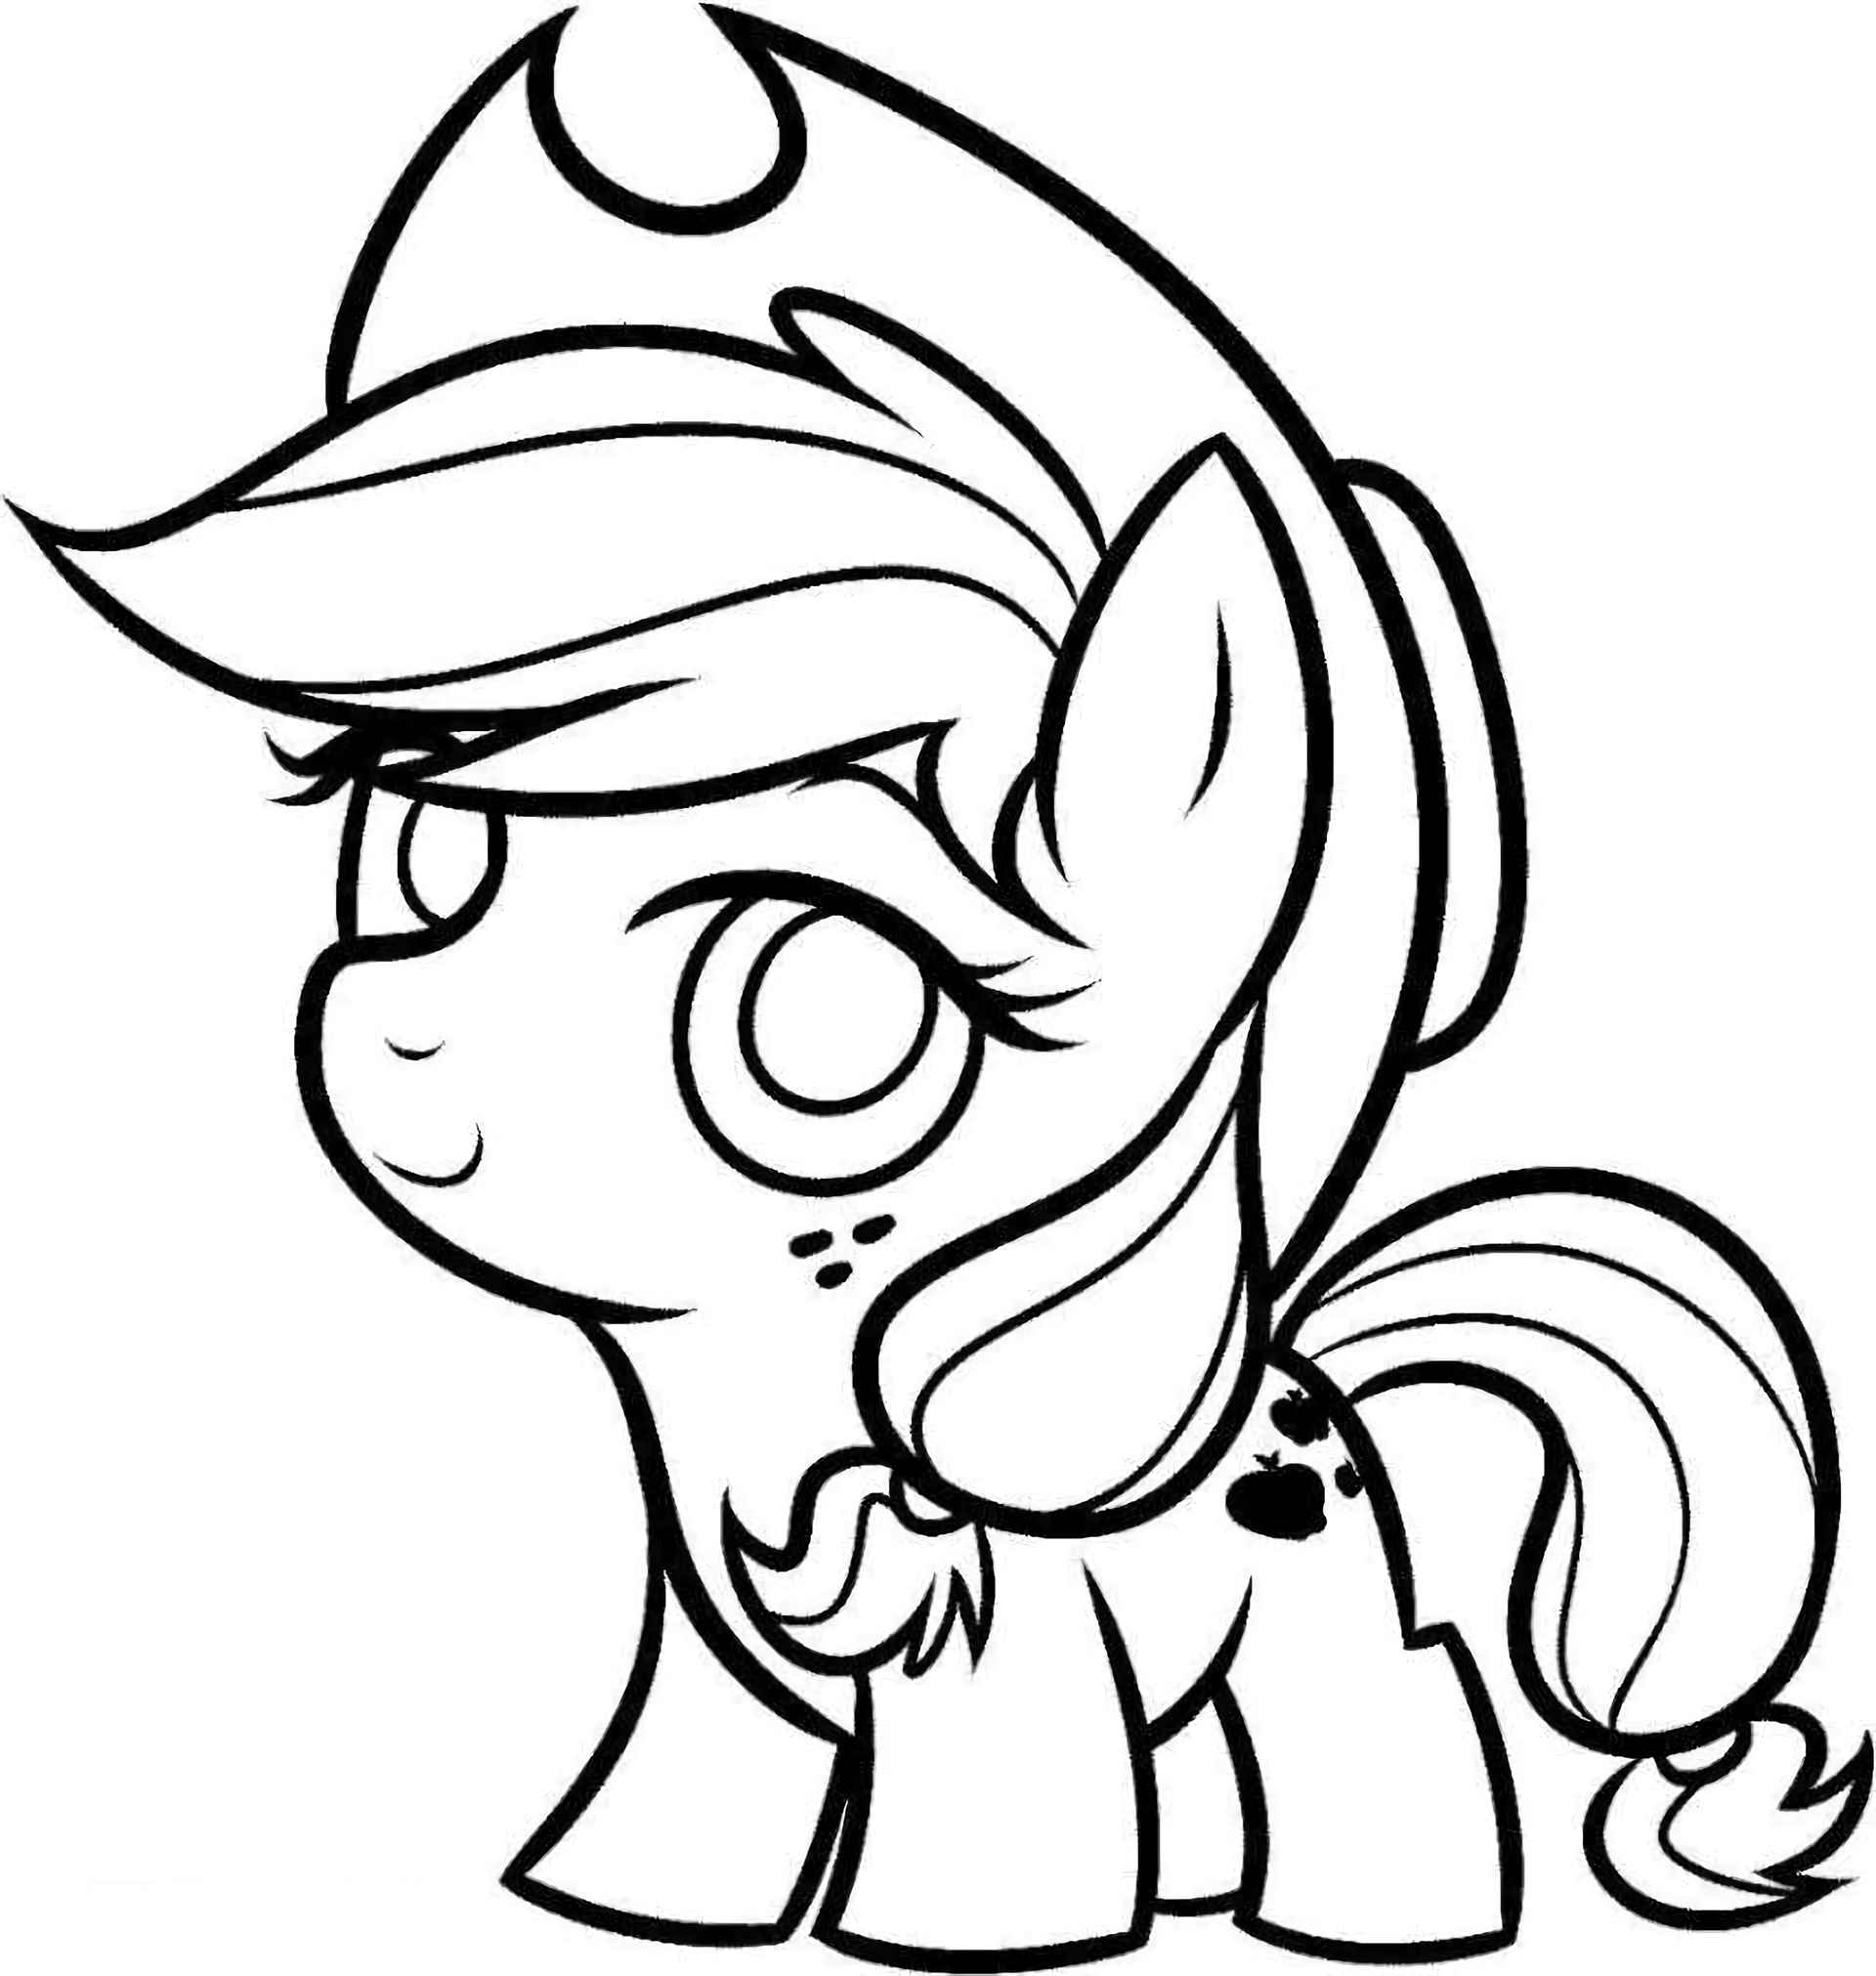 Coloring Page Small Copy Of Pony Applejack From My Little Pony